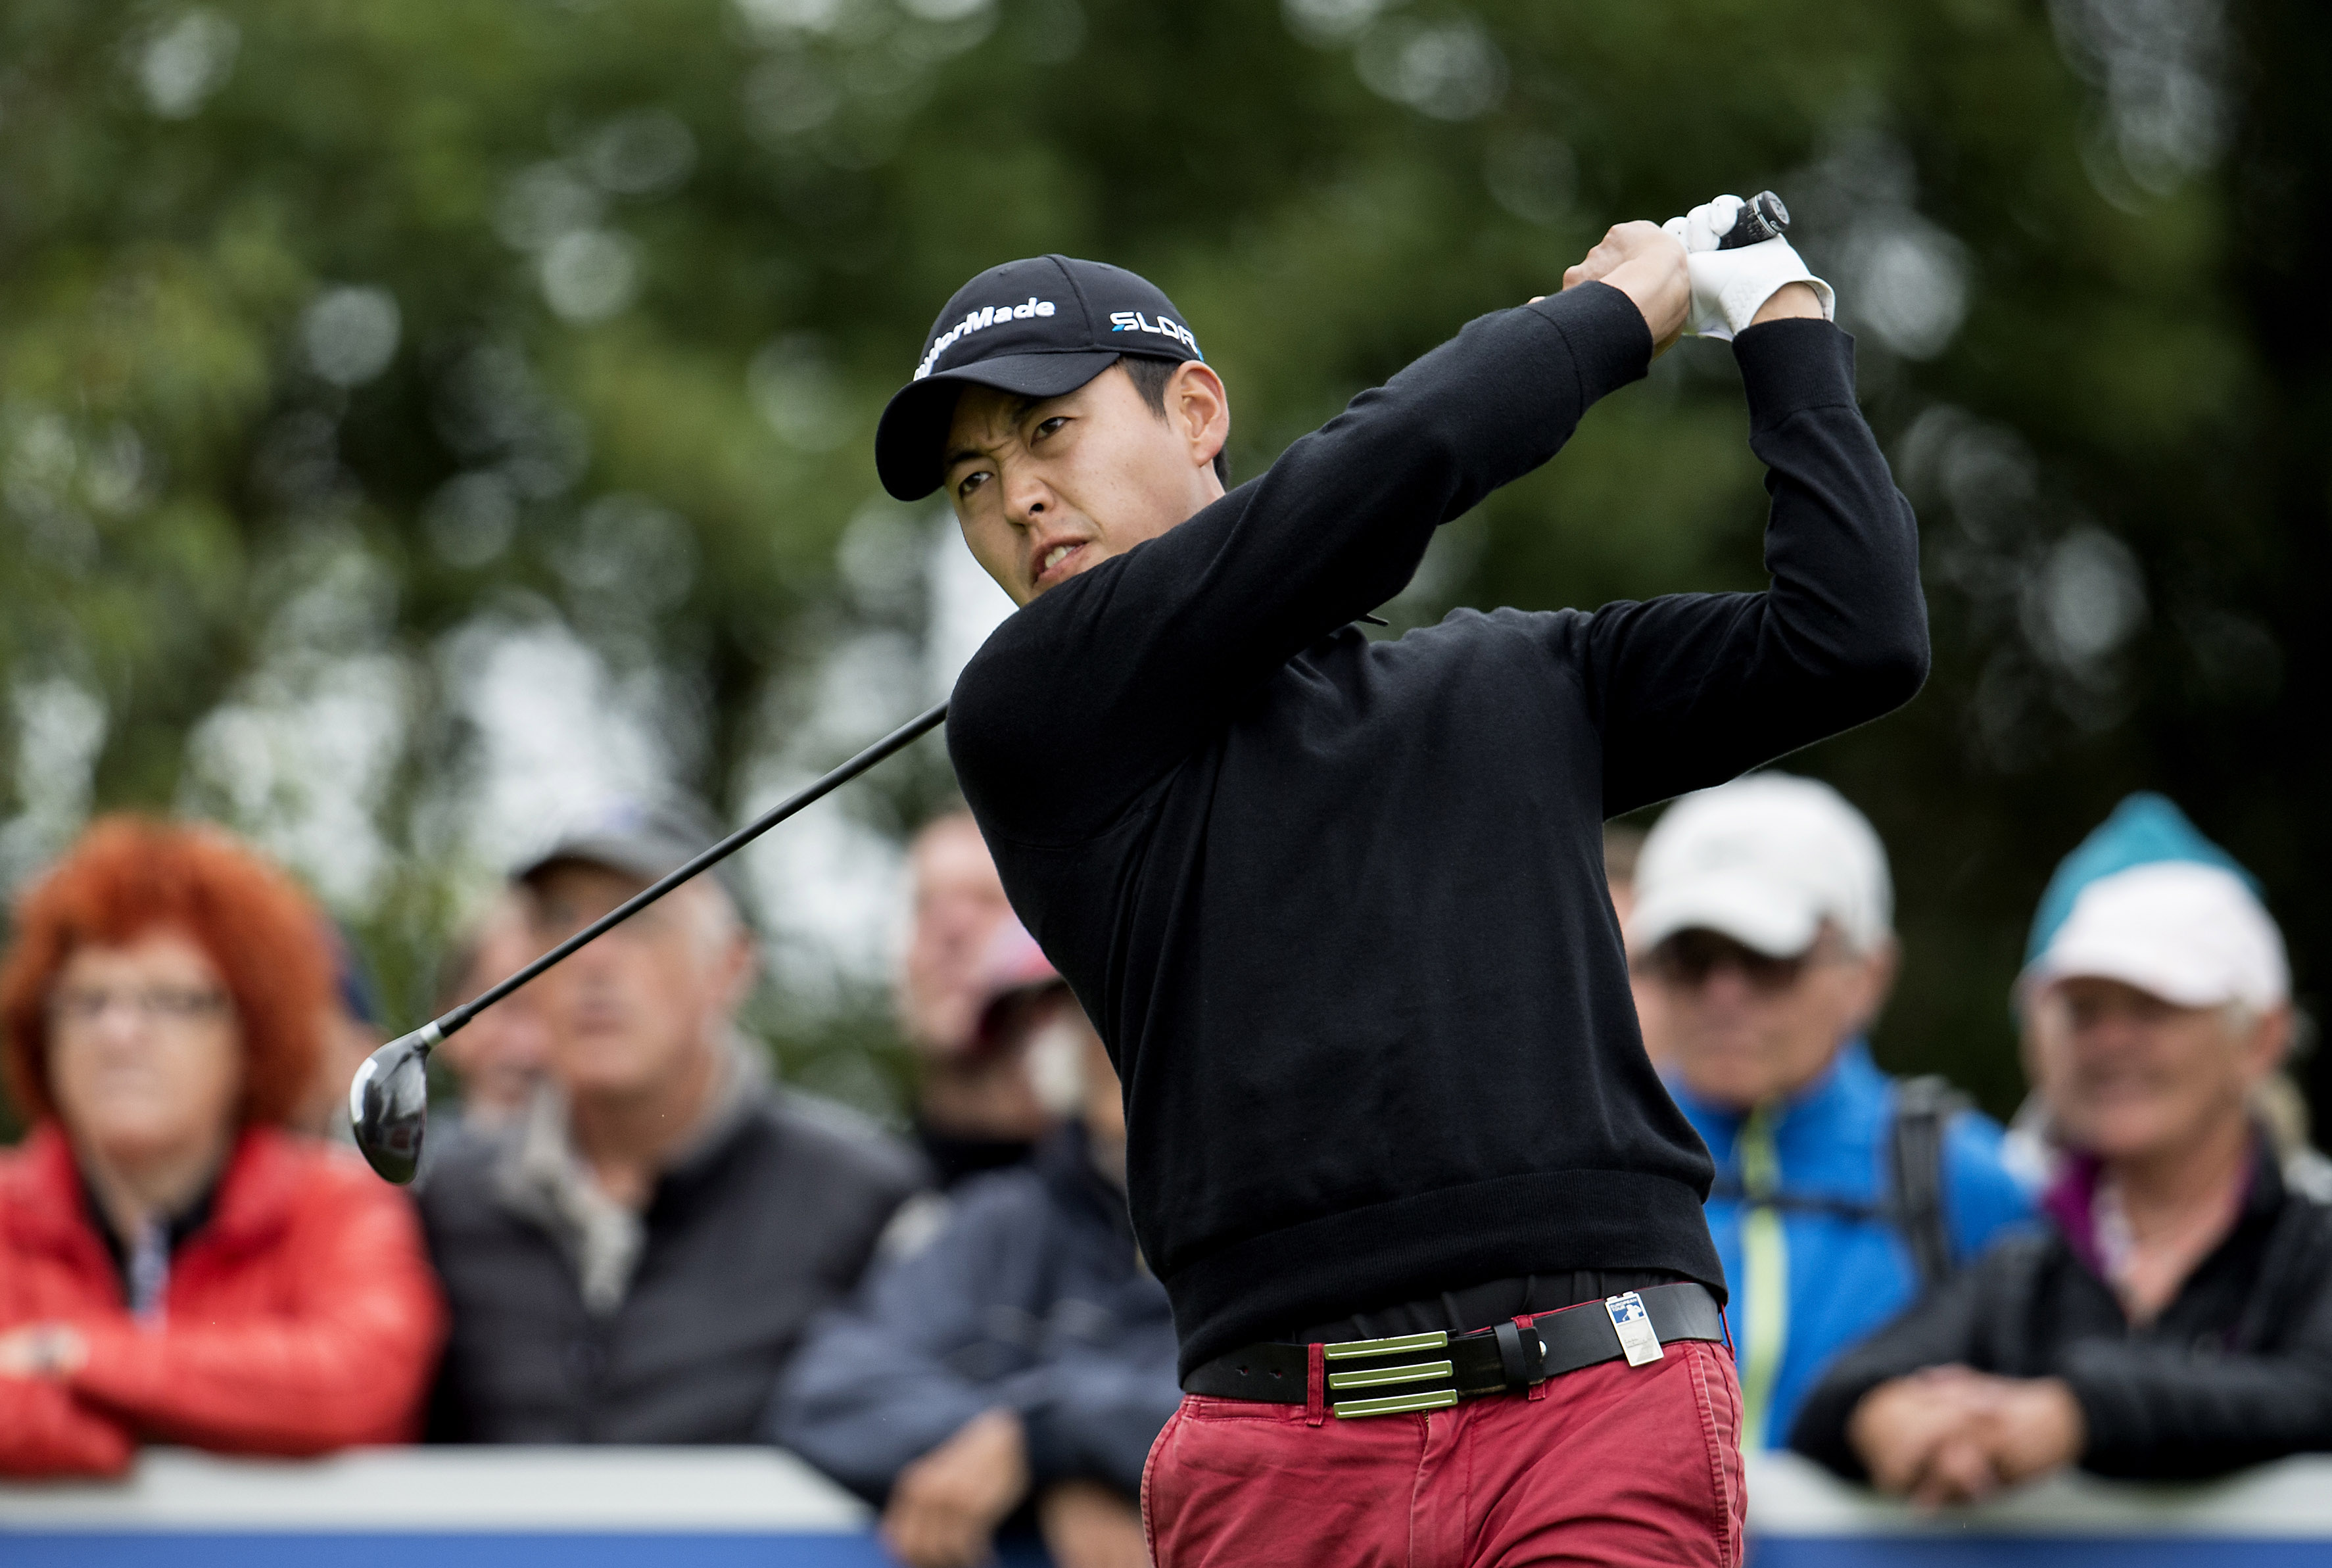 Daniel Im of the U.S during the third round of the European Tour Golf Tournament in Himmerland, Denmark, Saturday, Aug. 16, 2014. (AP Photo/POLFOTO, Rene Schütze) DENMARK OUT